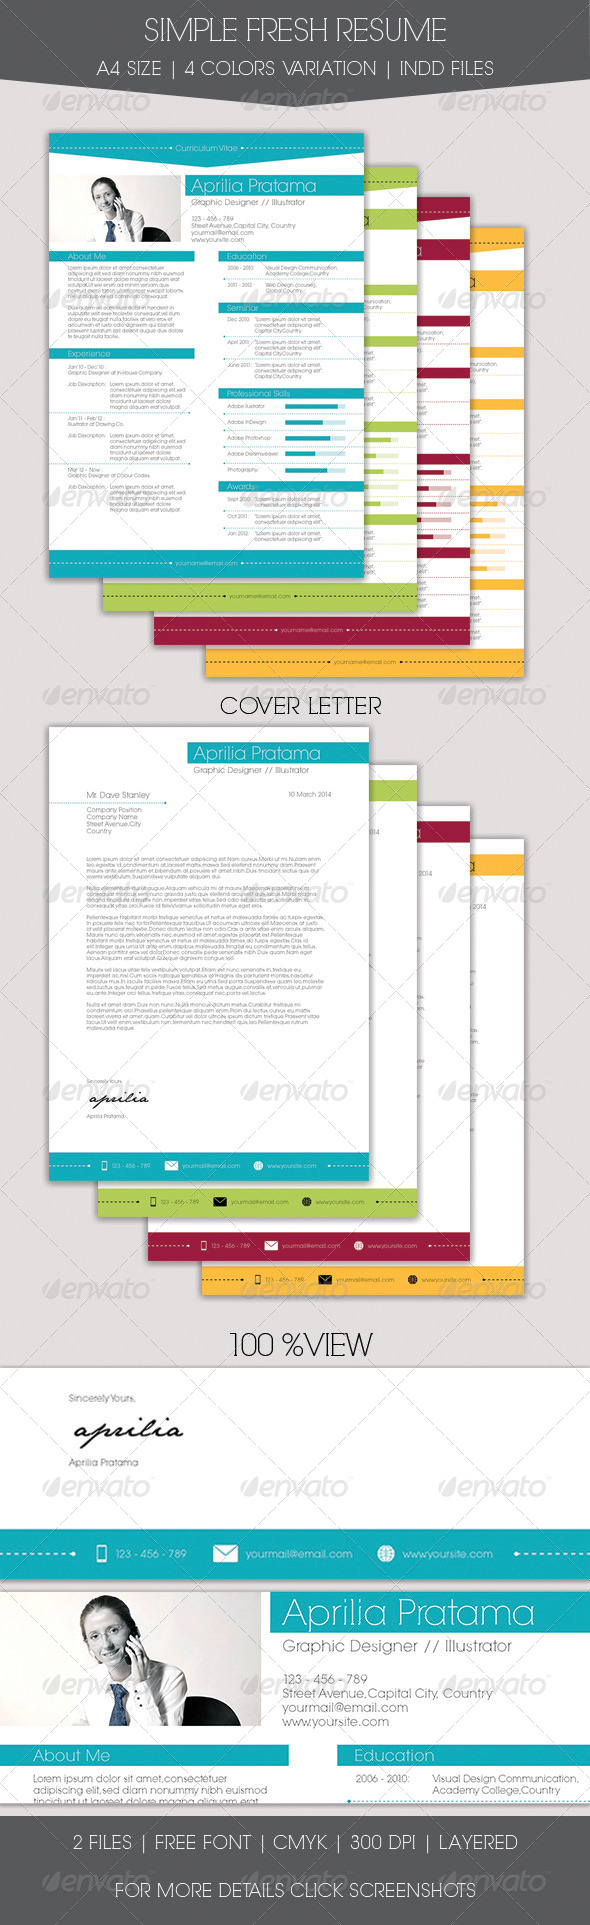 GraphicRiver Simple Fresh Resume 7111982